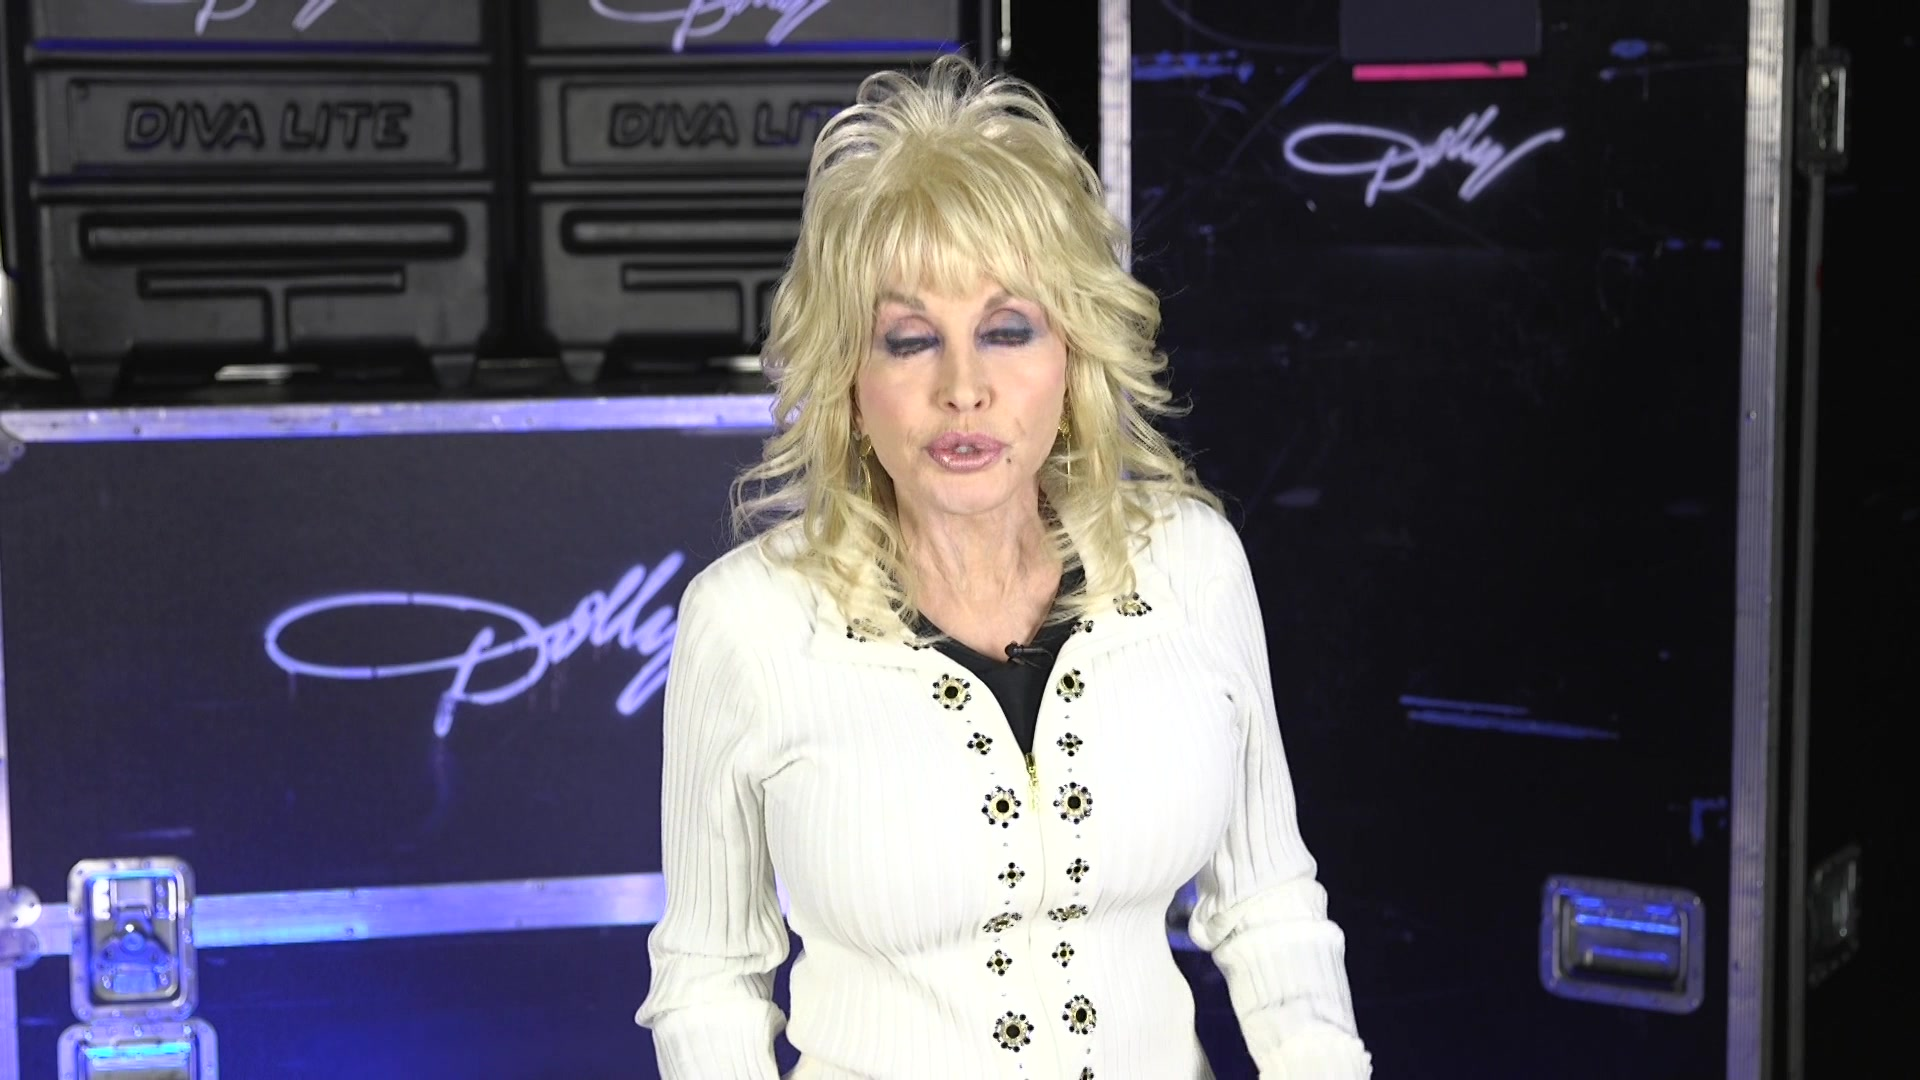 Dolly Parton doesn't get nervous putting out new music